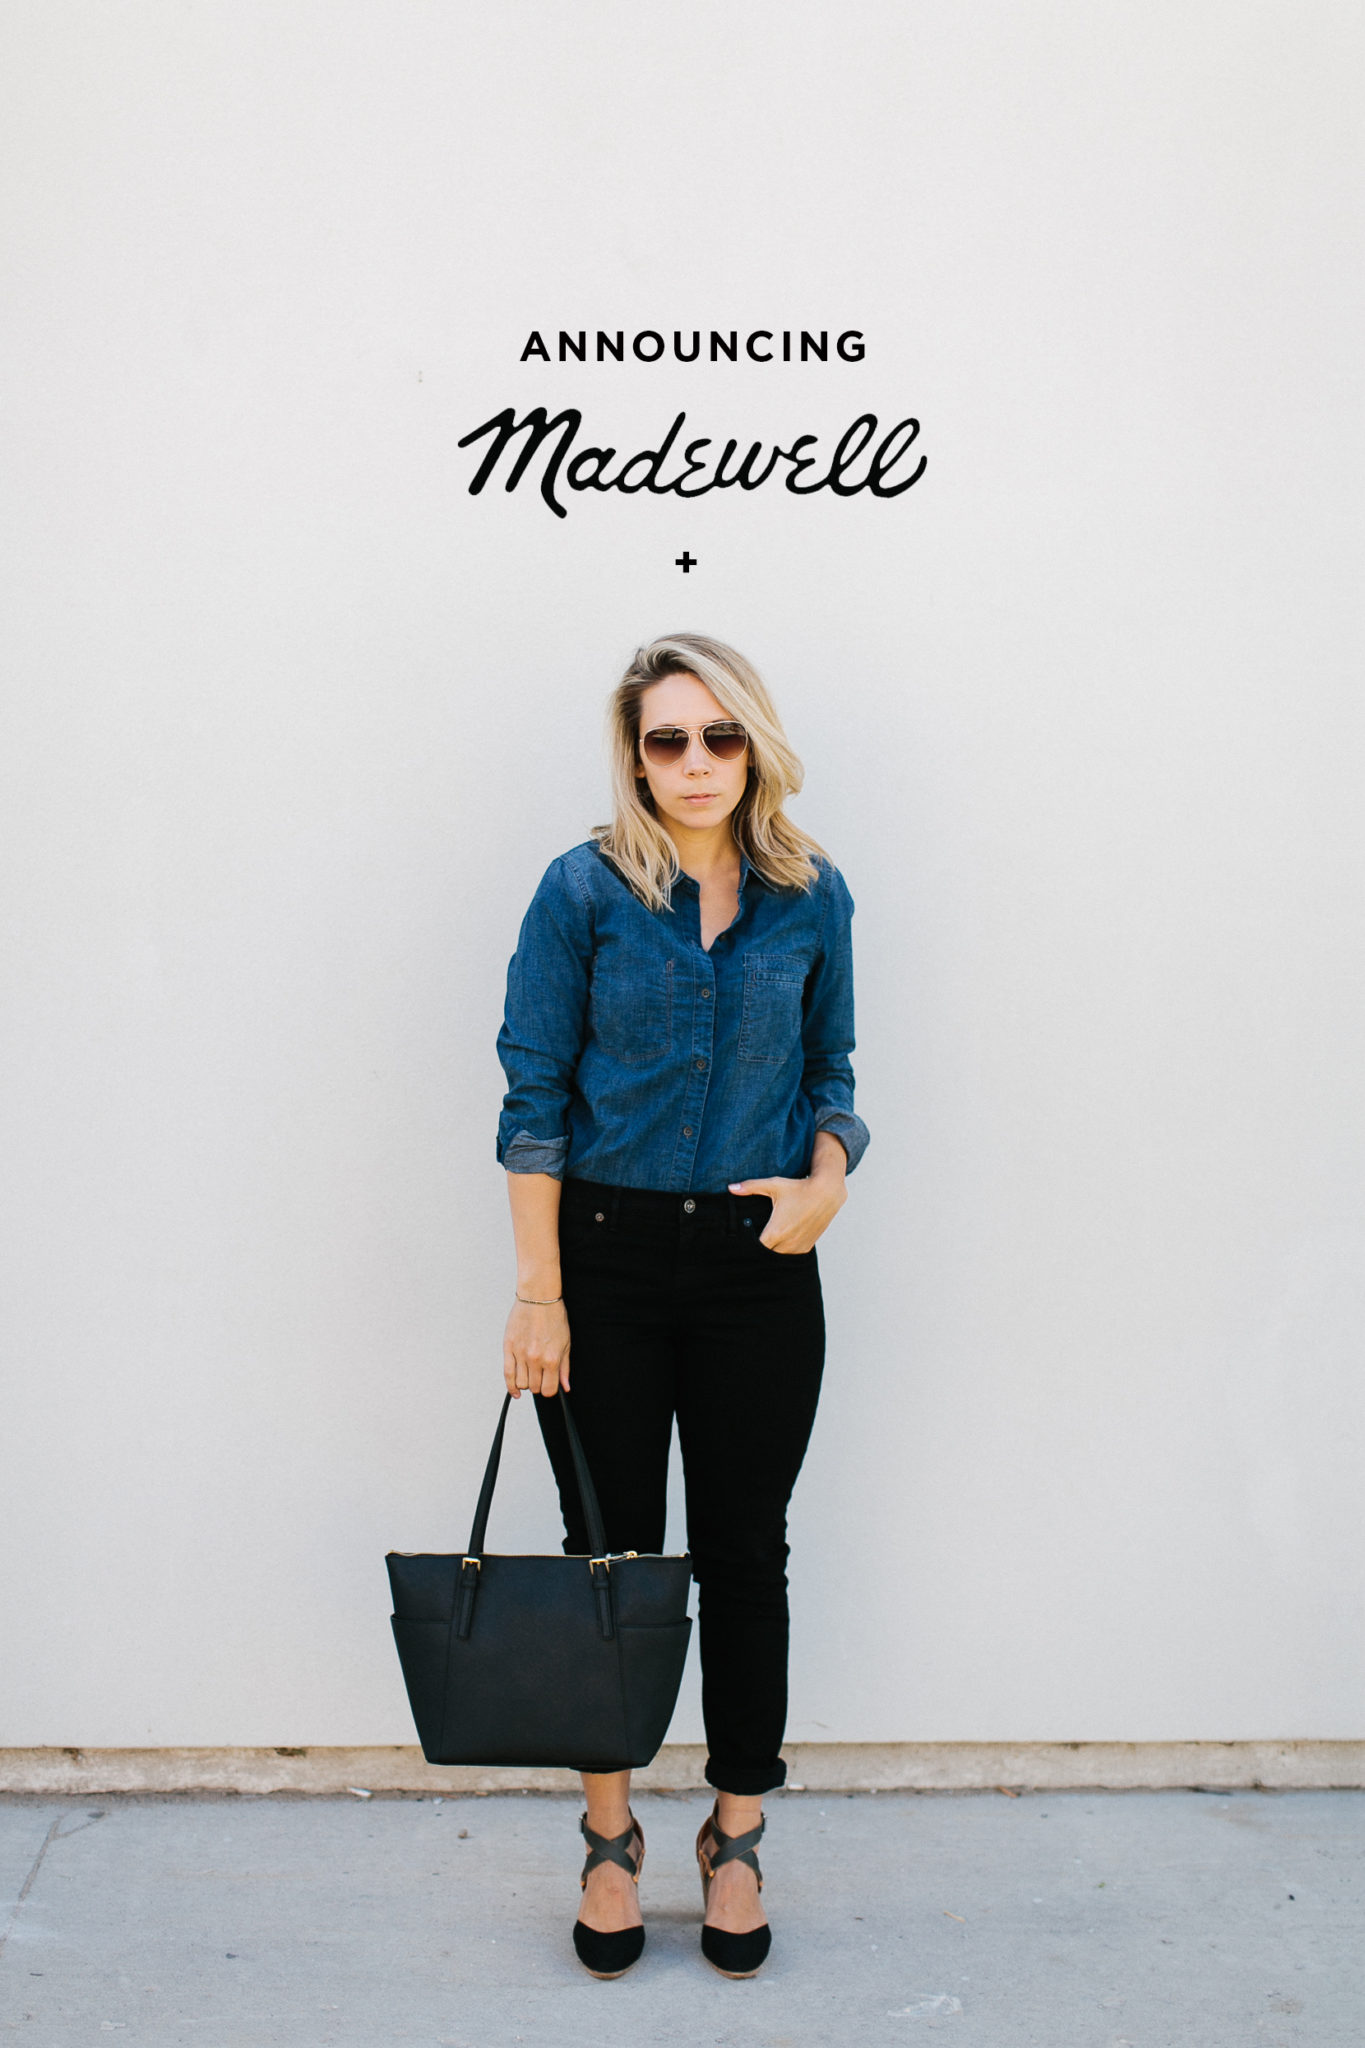 Madewell Grand Opening and New Denim Line | The Fresh Exchange